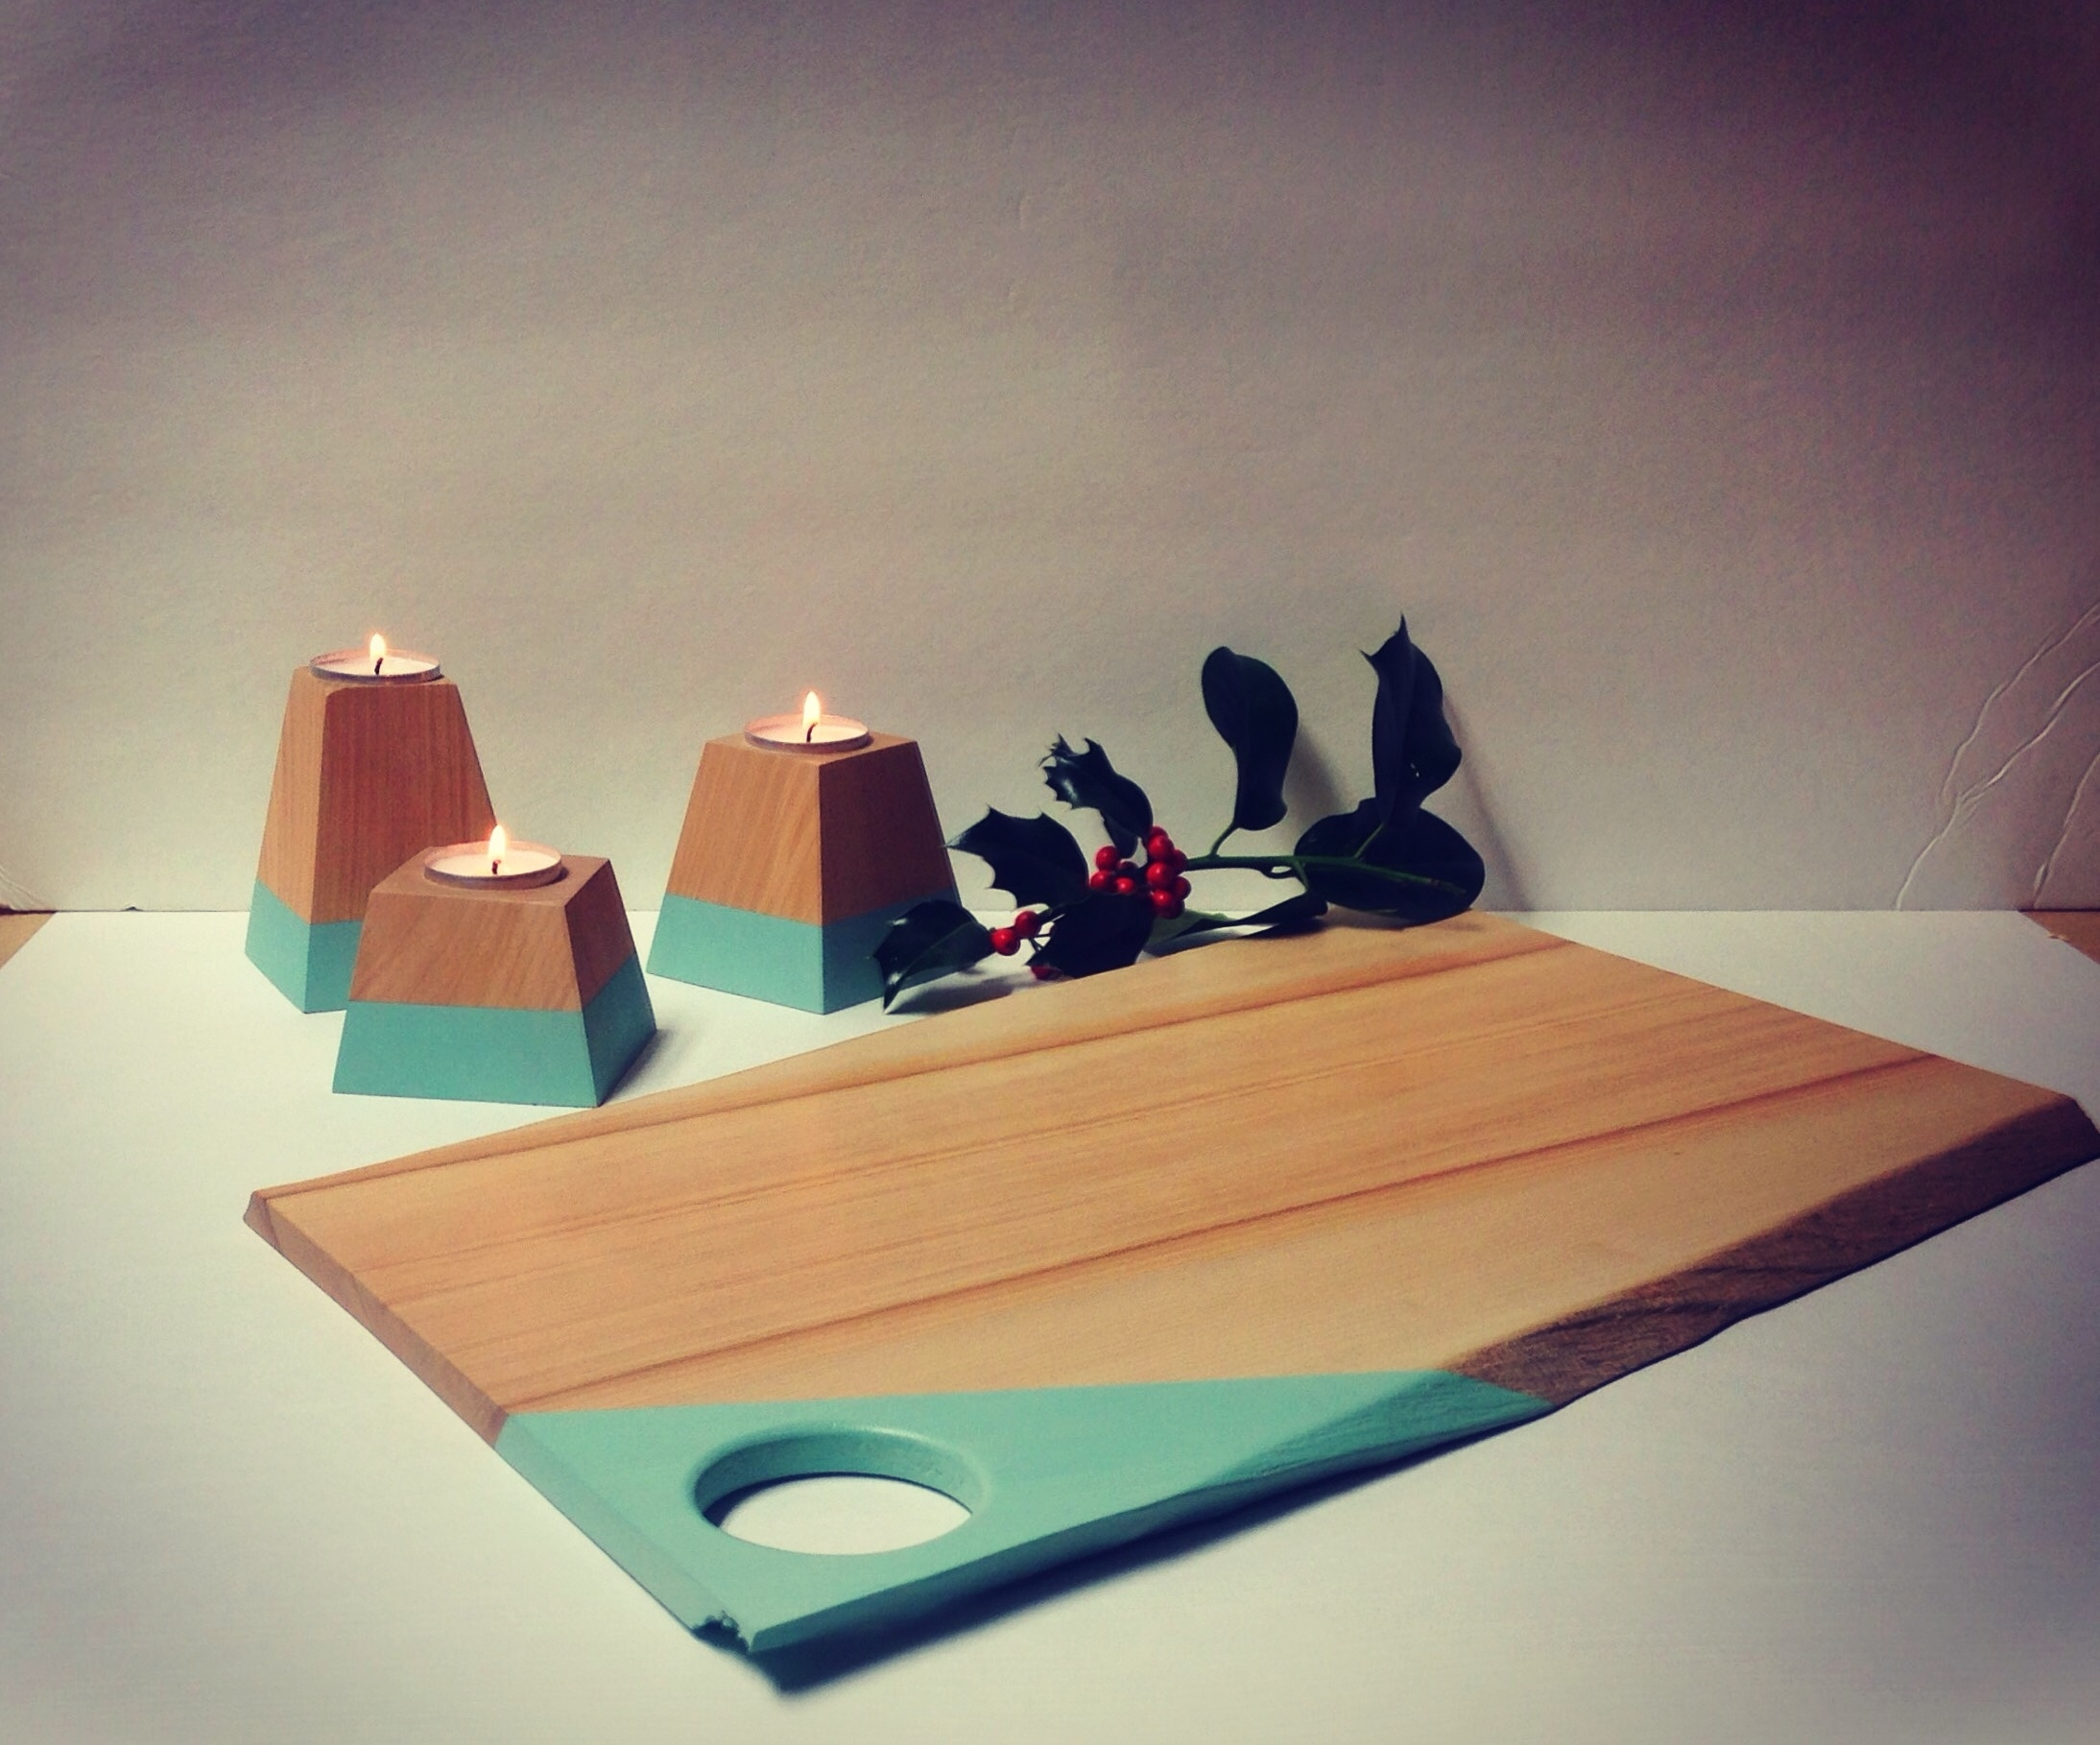 Serving board and candles